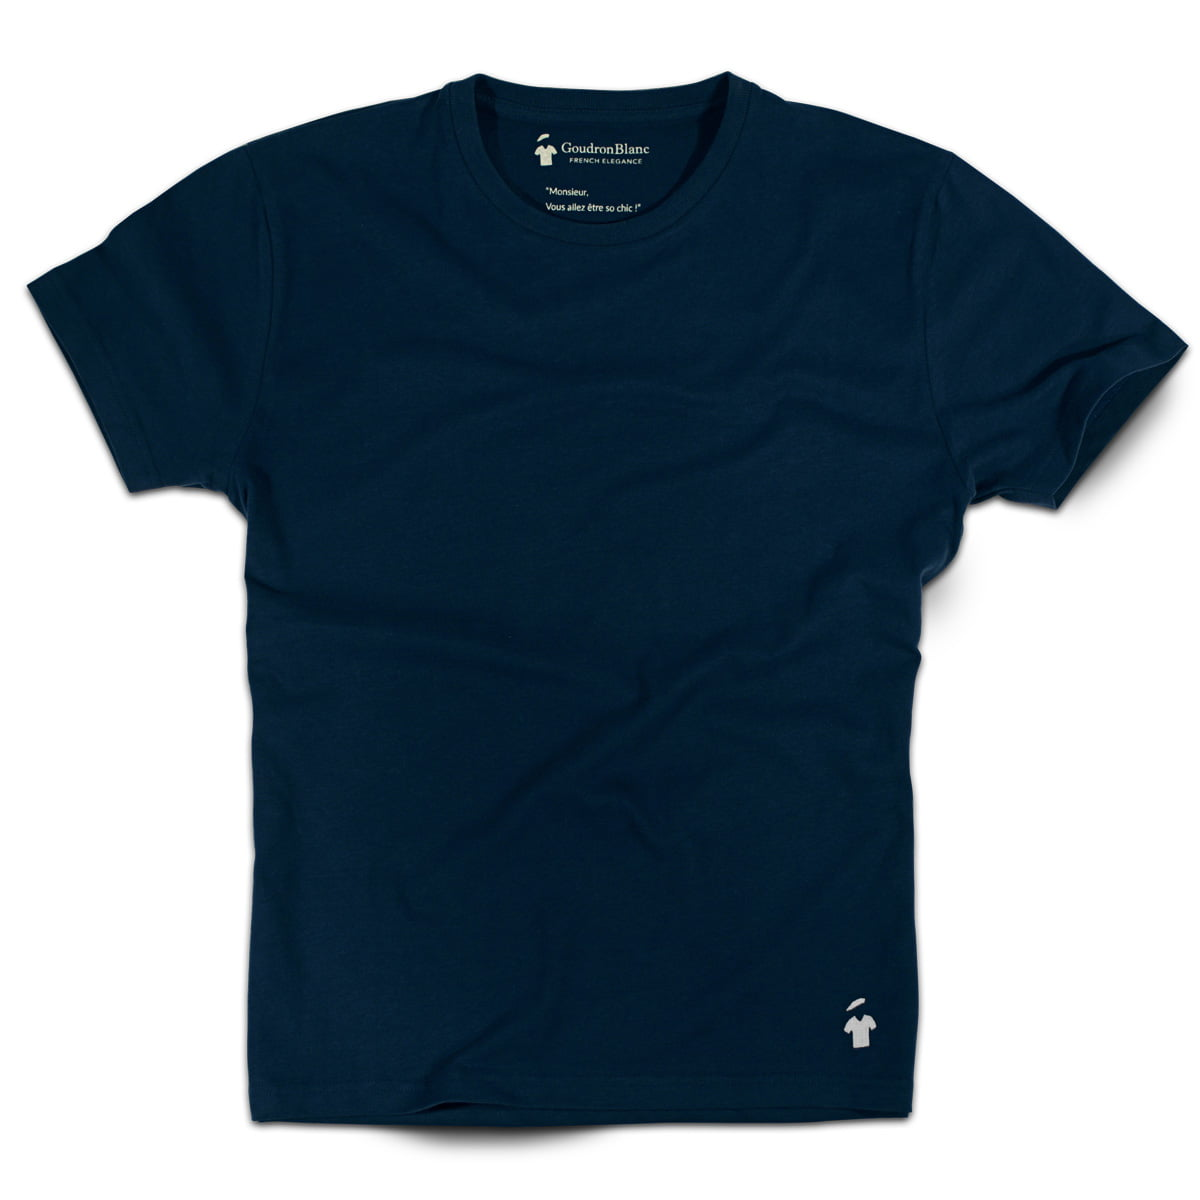 t shirt bleu marine de qualit pour homme goudronblanc. Black Bedroom Furniture Sets. Home Design Ideas